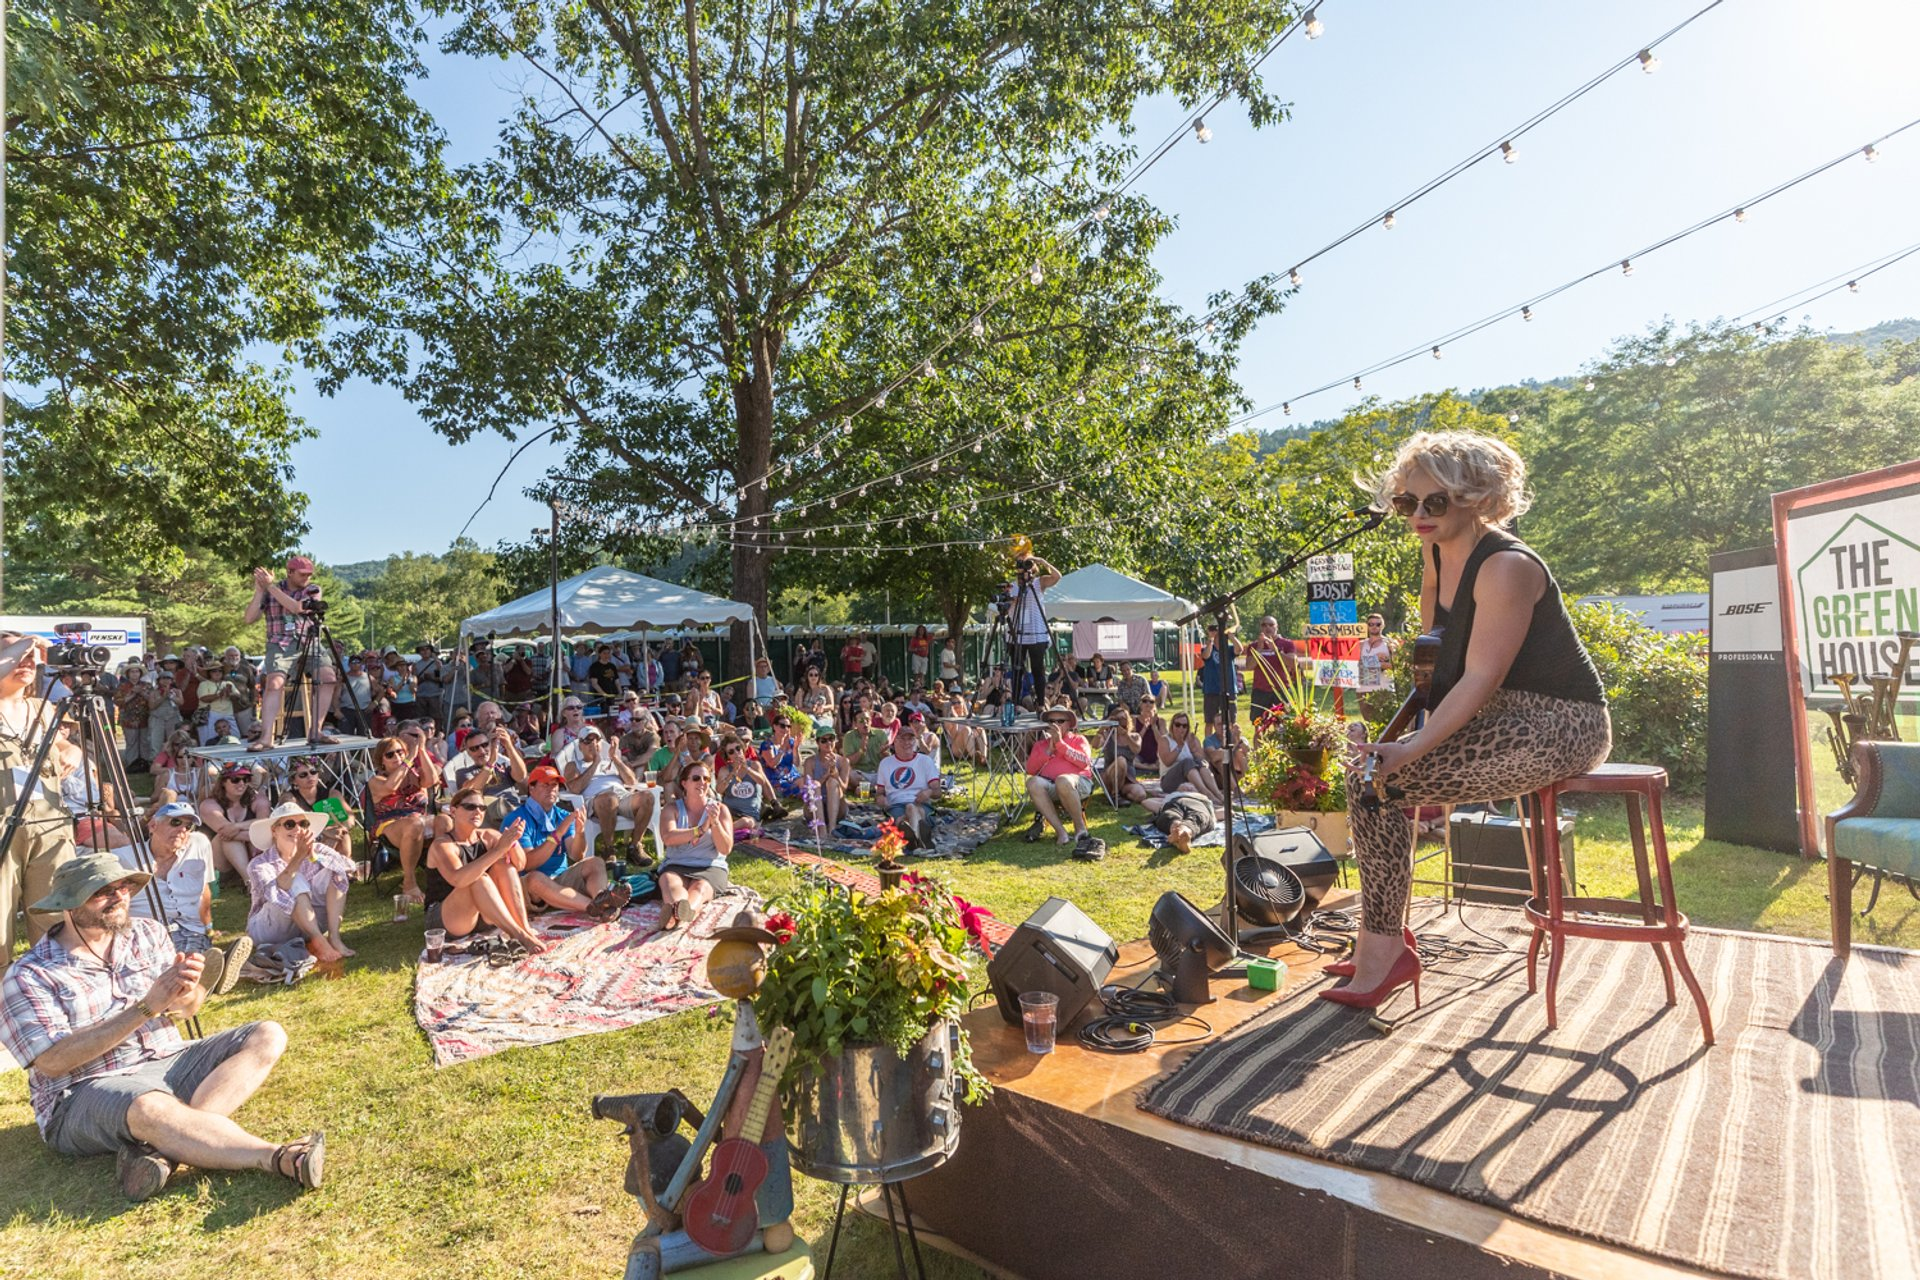 Samantha Fish on Green House stage 2020